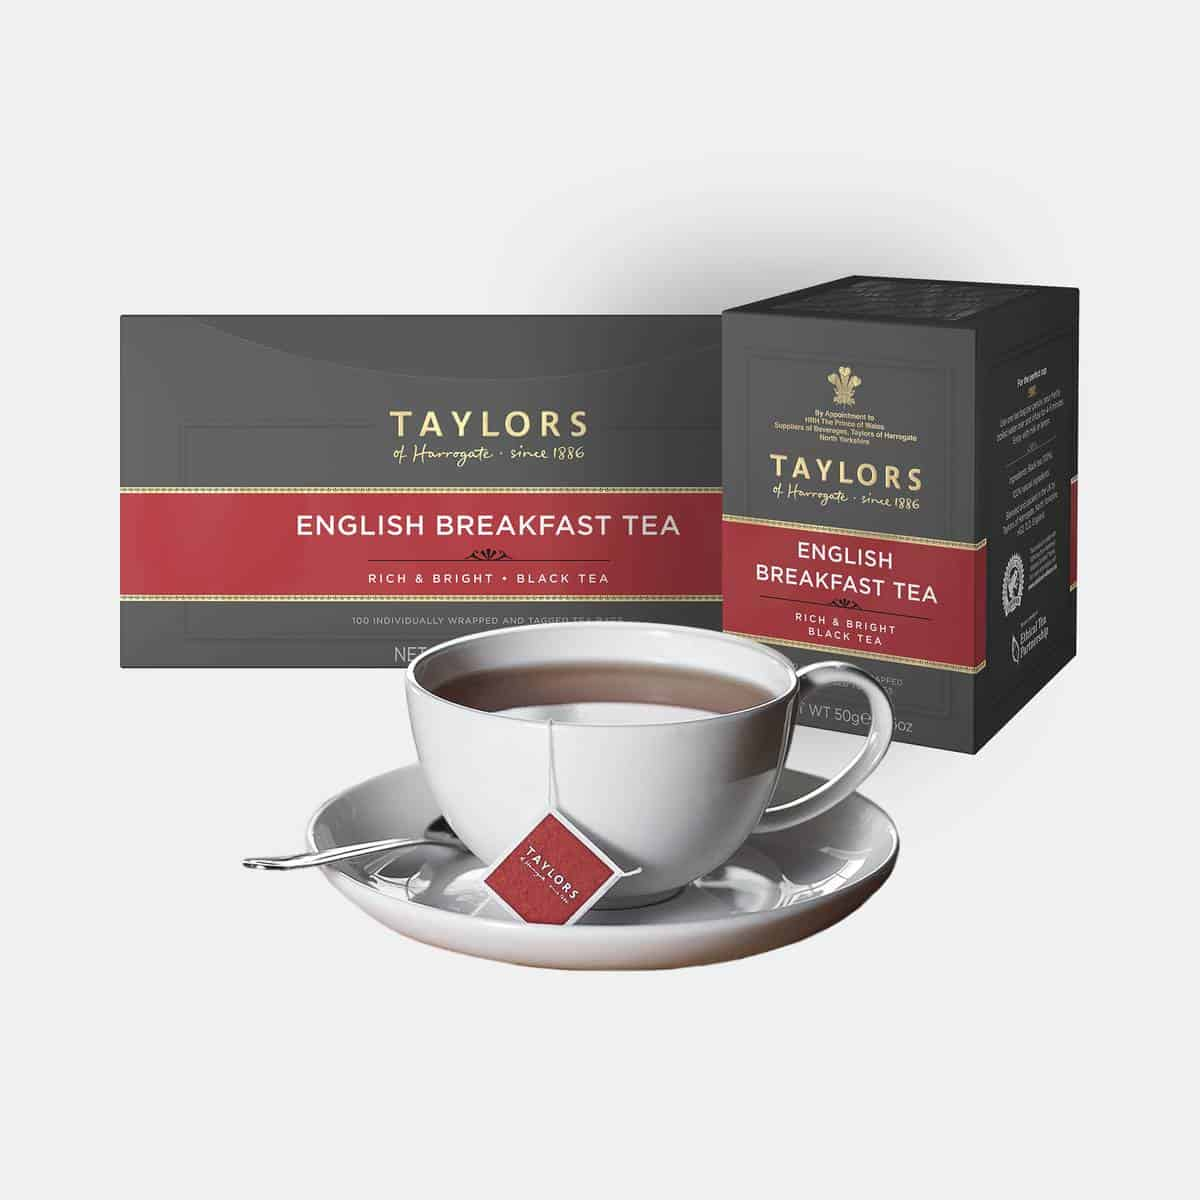 Taylors of Harrogate English Breakfast Tea